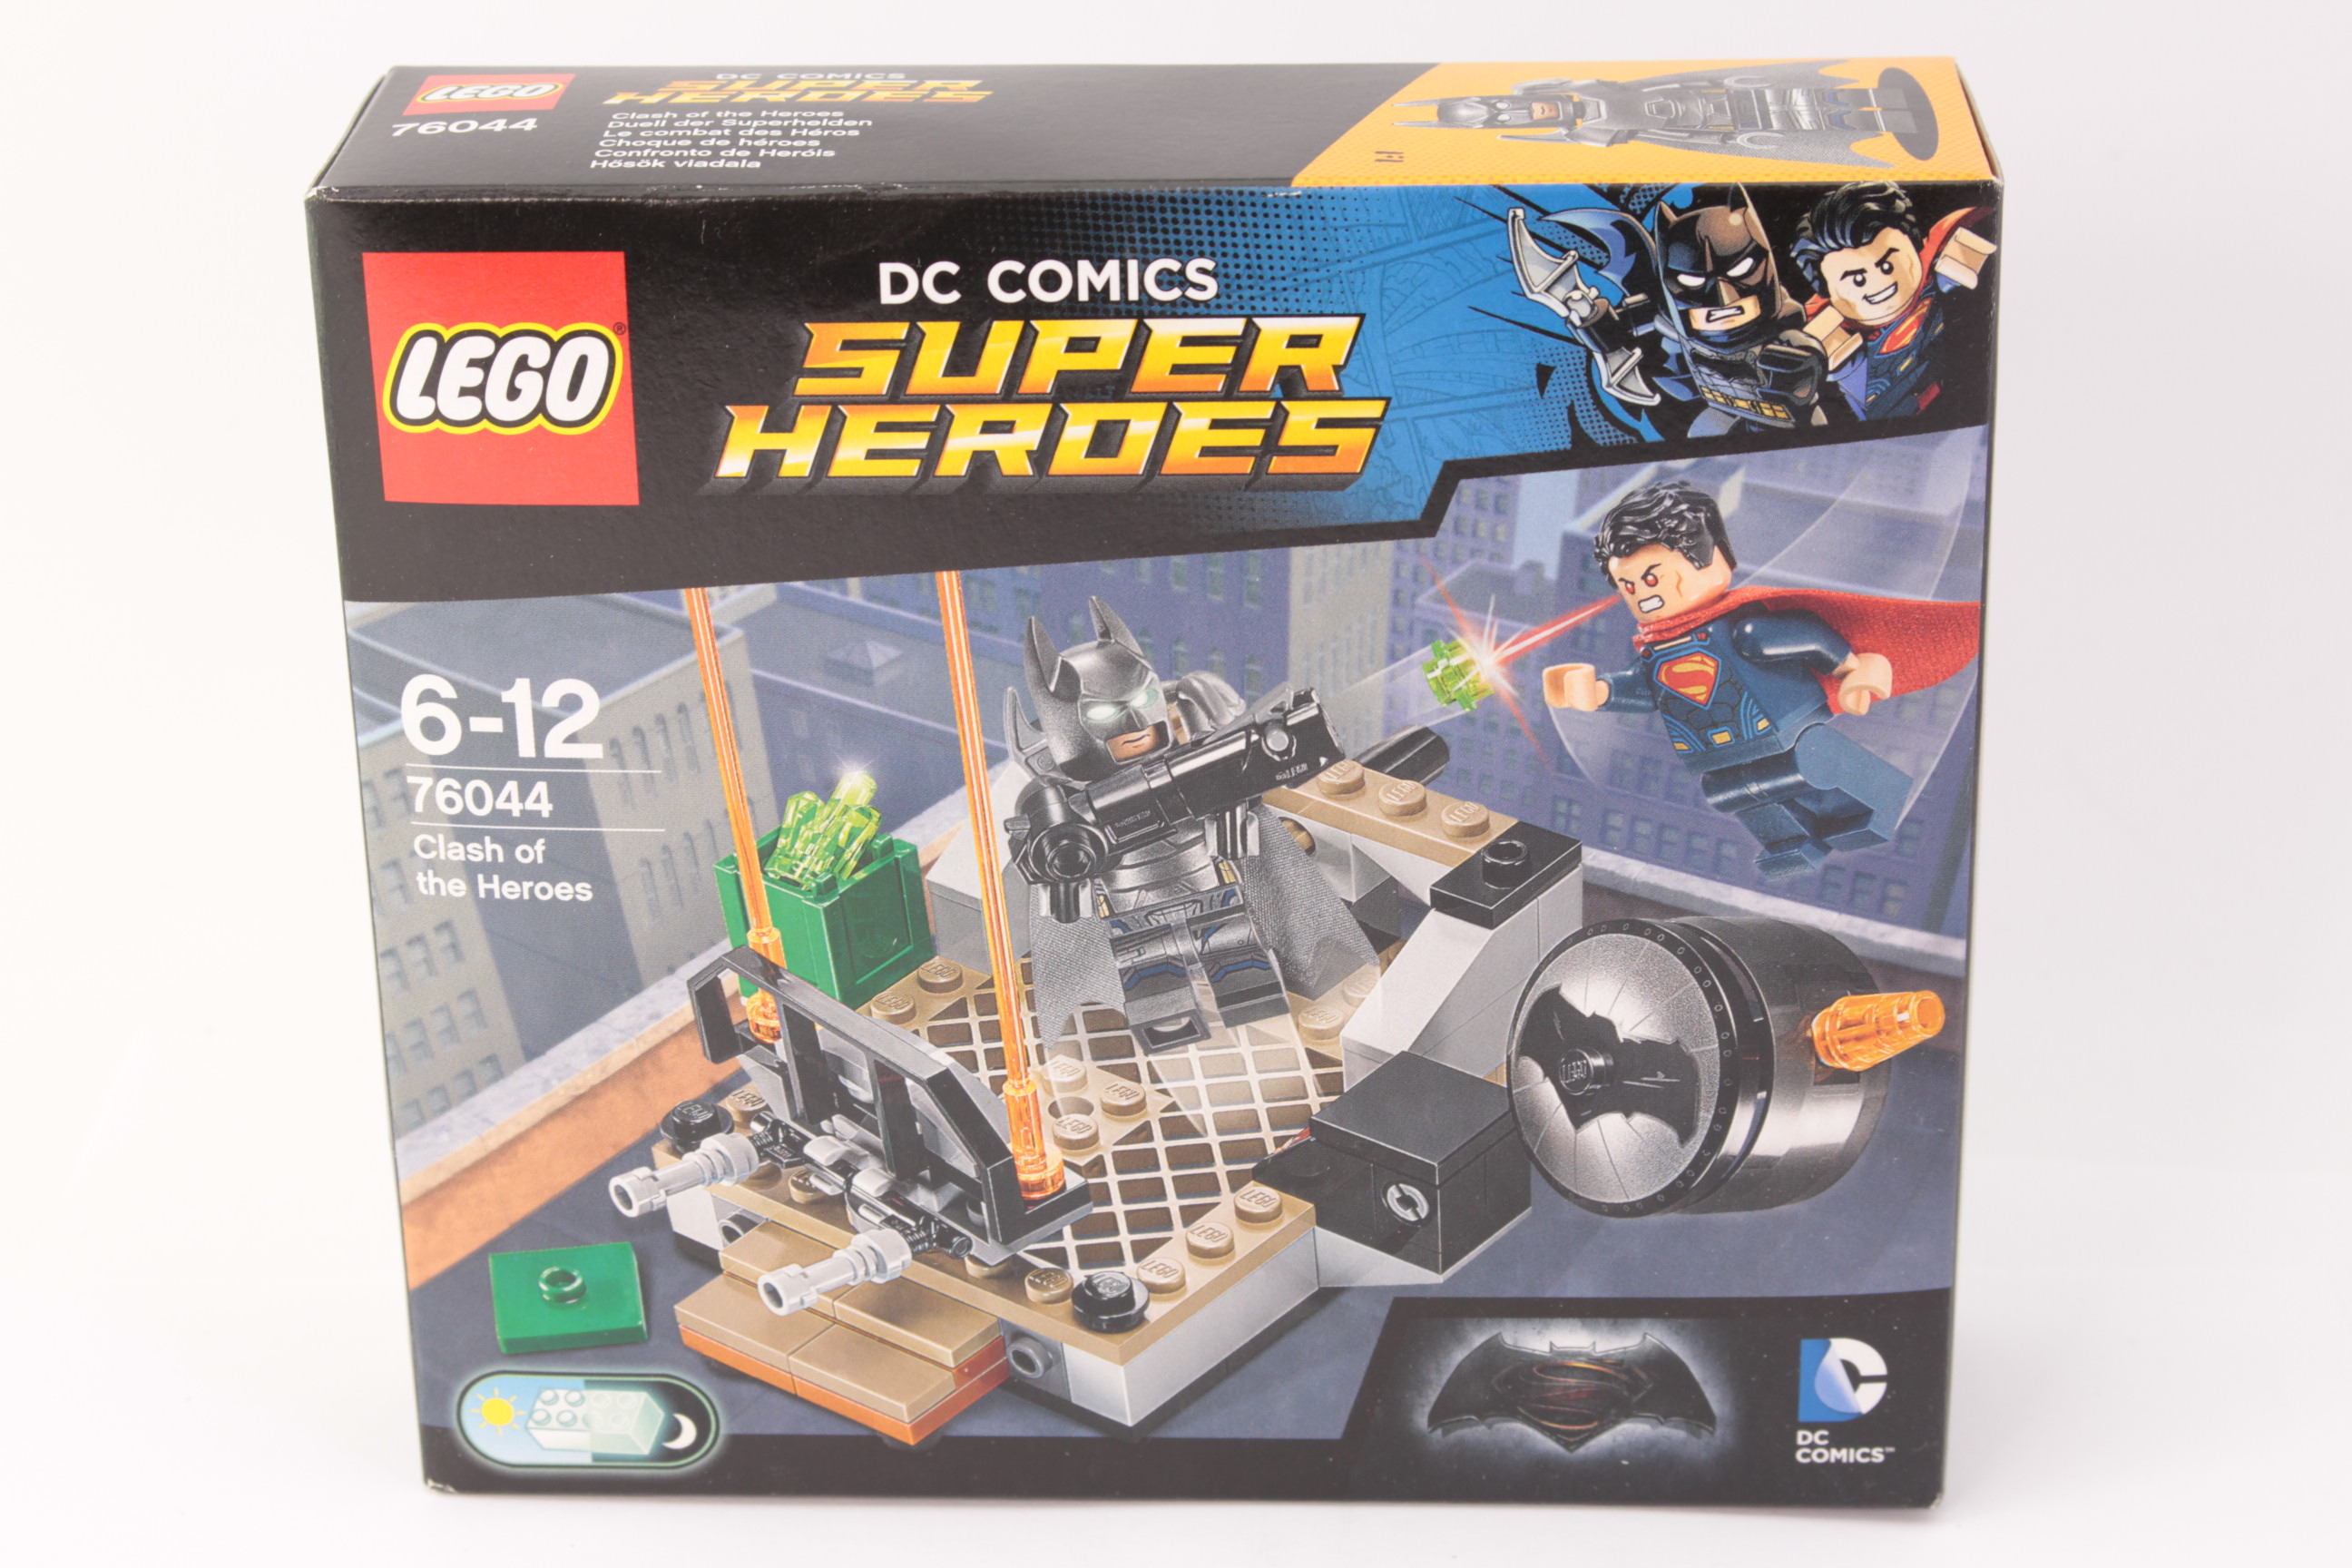 NEW LEGO DC COMICS SUPER HEROES 76044 CLASH OF THE HEROES FREE SHIPPING